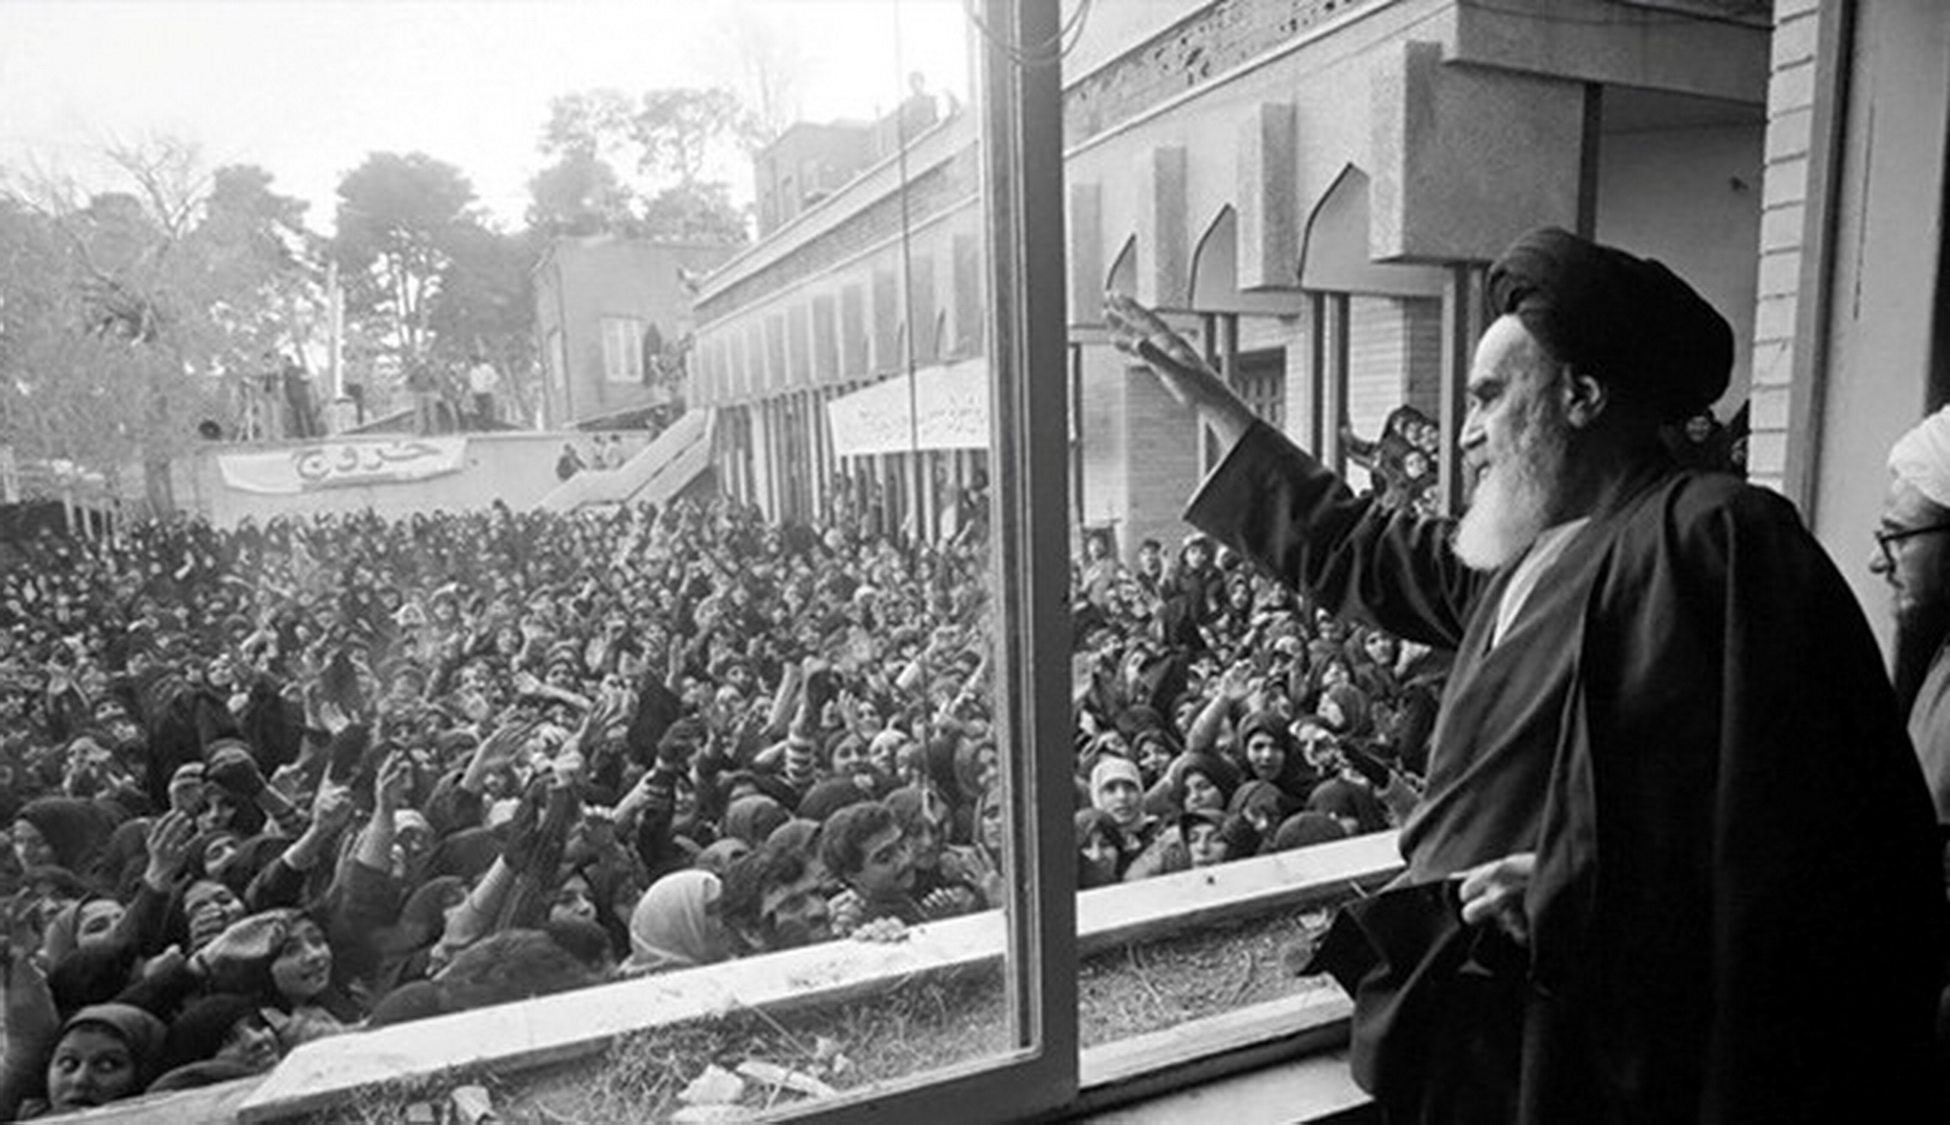 the iranian revolution and islamic movements Essentially, this differentiates them from the green movement in 2009, and the iranian revolution in 1979 both of these past movements were de facto socio-political movements with economic components, rather than vice versa.